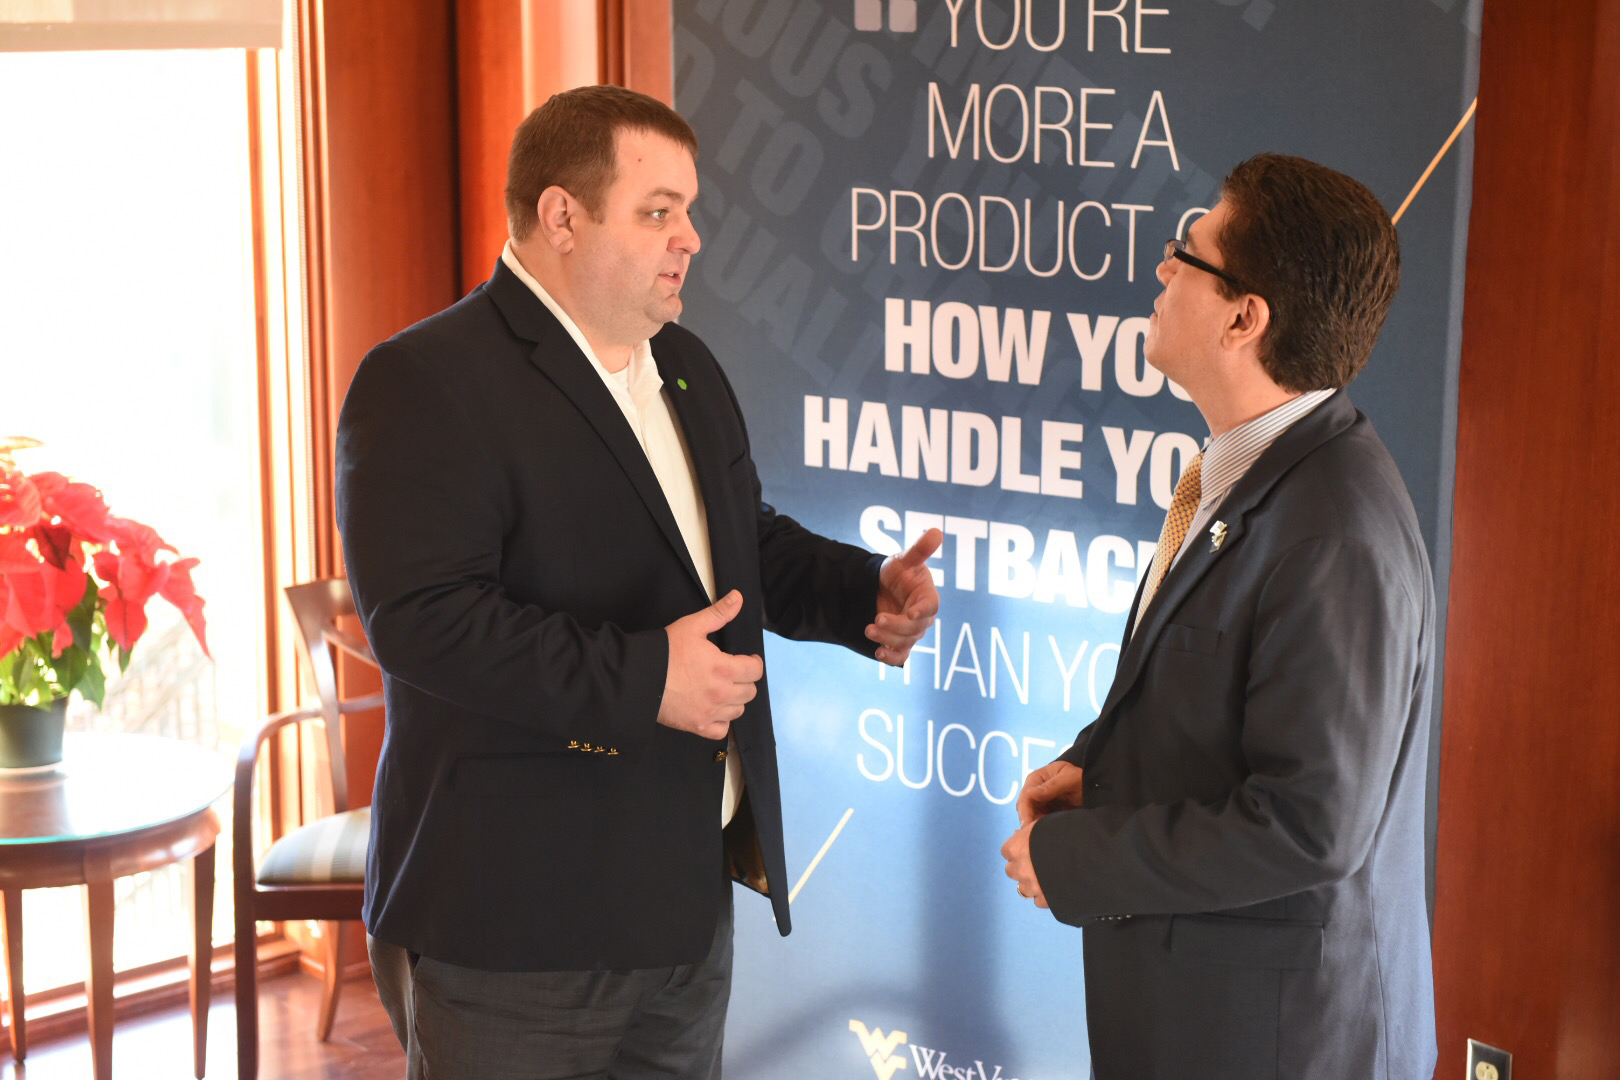 Huntington's regional president for West Virginia, left, talks with Javier Reyes, dean of the WVU John Chambers College of Business and Economics. Huntington presented a gift of $2 million to the business school on Dec. 18 for its Startup Engine business accelerator.